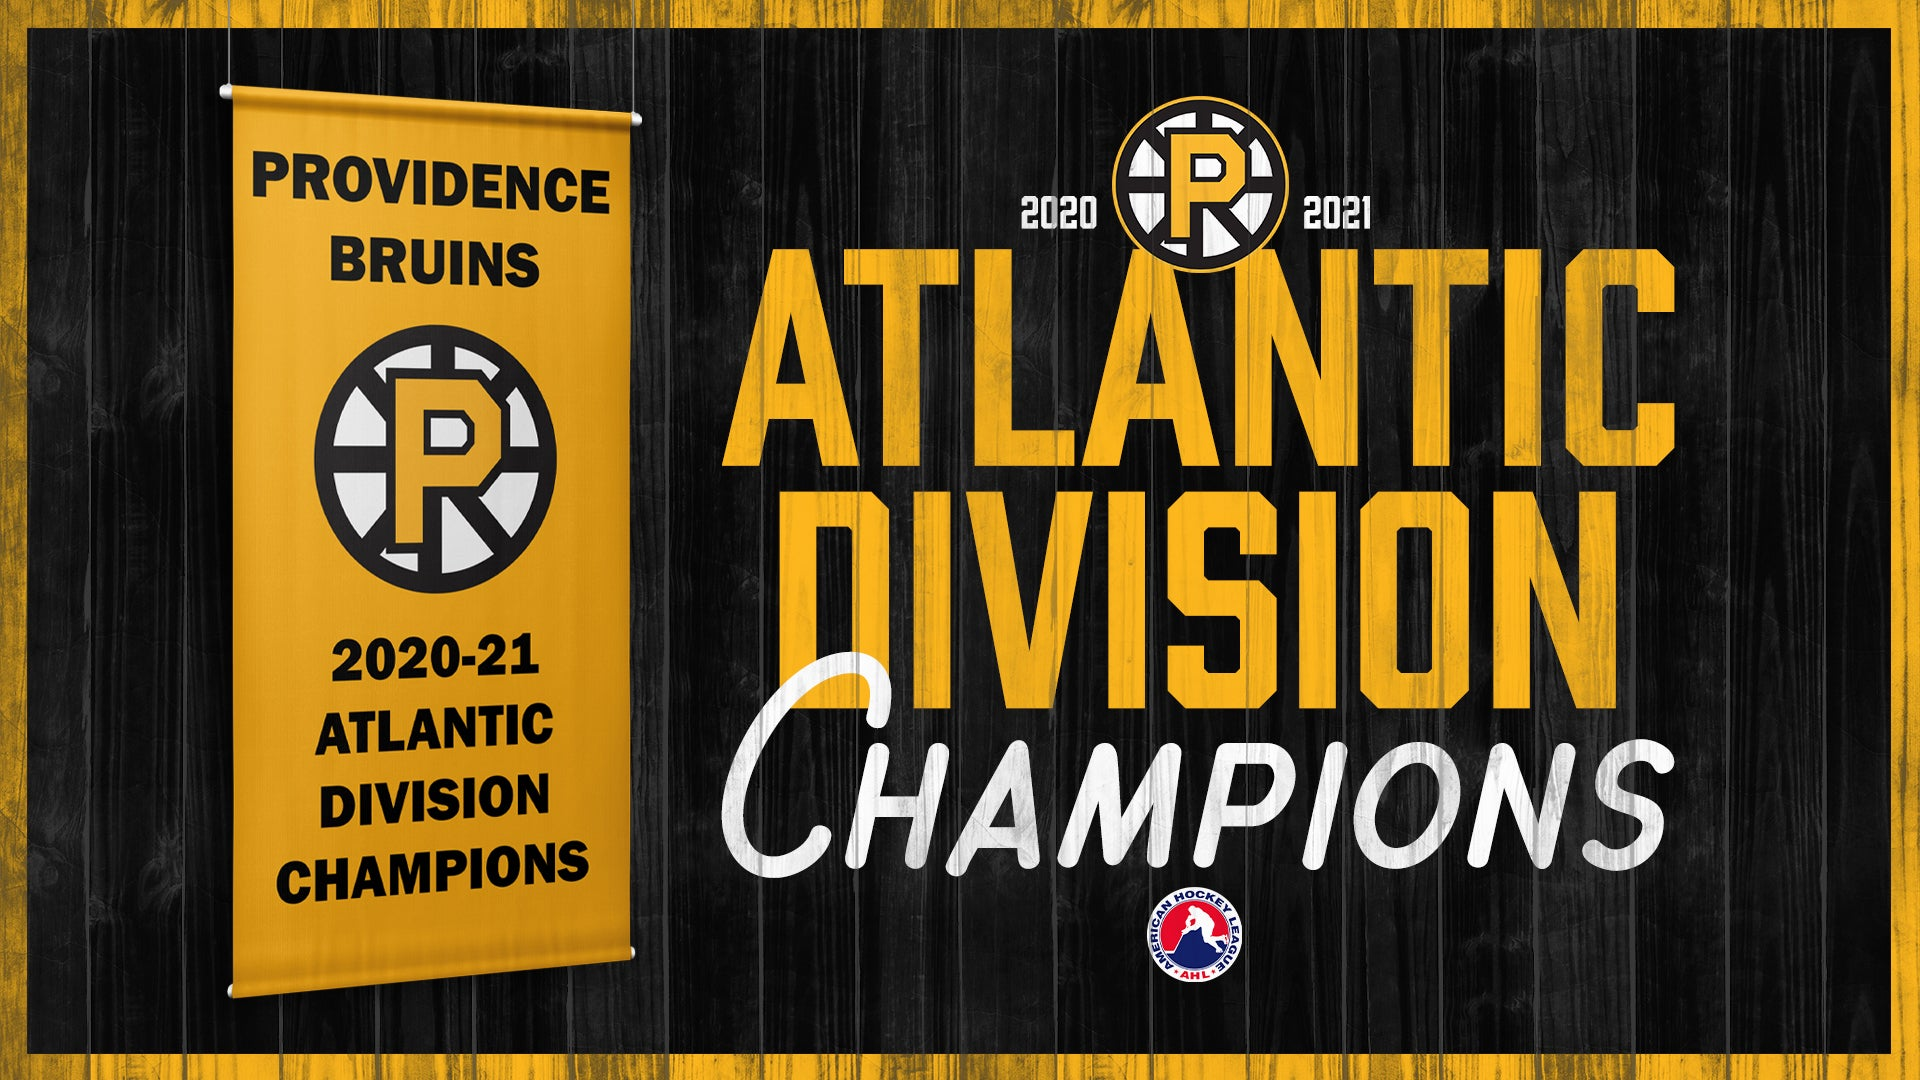 P-BRUINS WIN ATLANTIC DIVISION FOR SECOND CONSECUTIVE SEASON WITH 6-3 WIN OVER HARTFORD WOLF PACK